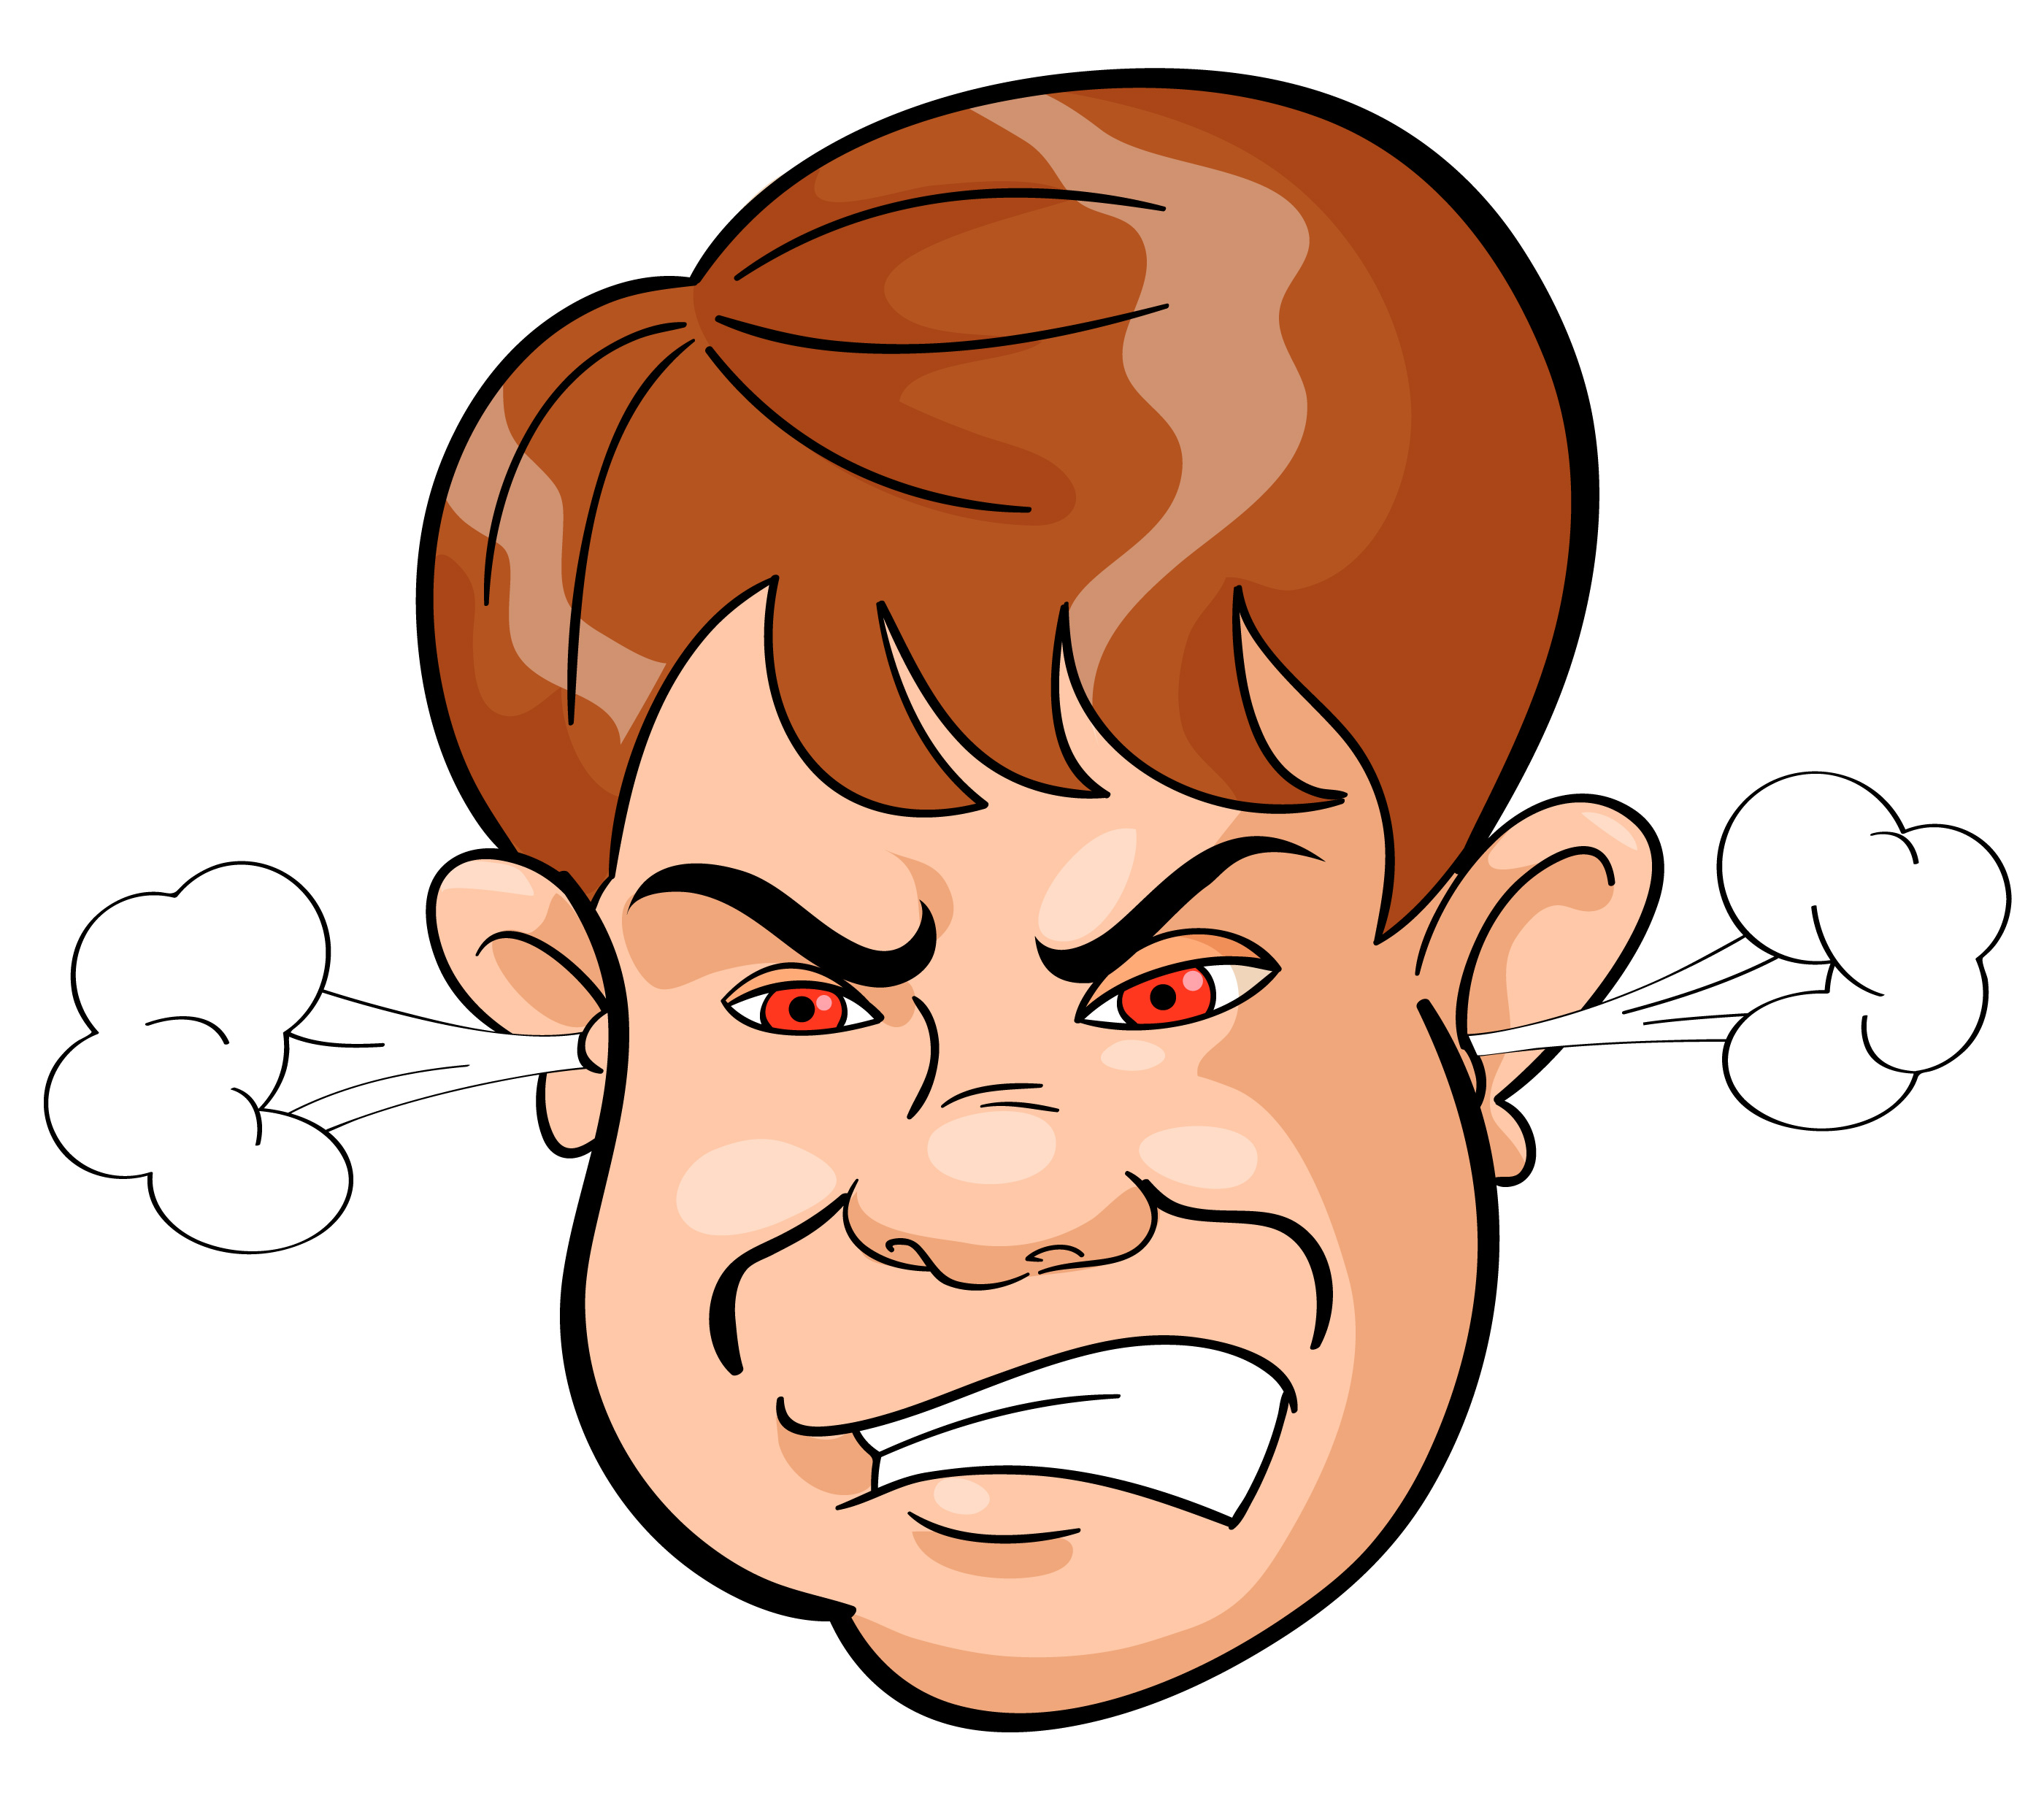 Clipart angry people clip art black and white Pictures Of Angry People | Free download best Pictures Of Angry ... clip art black and white